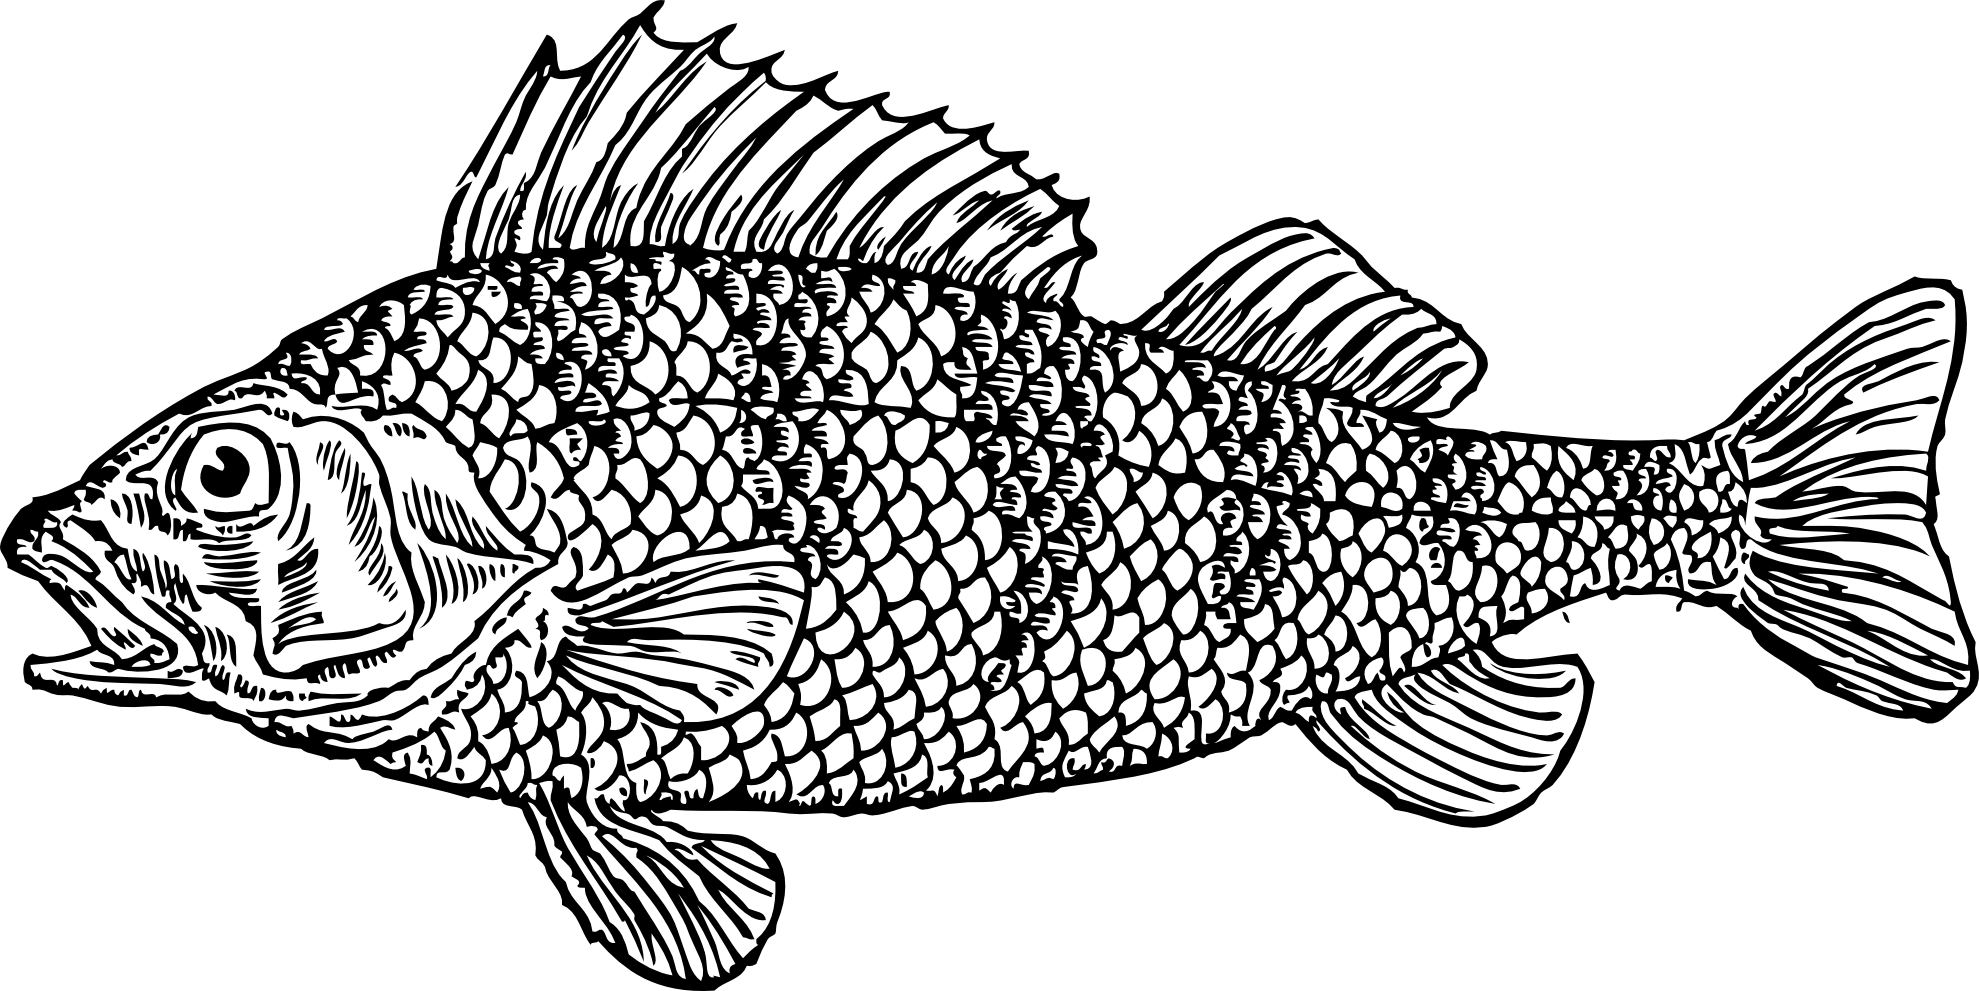 Cod Cartoon Clipart.